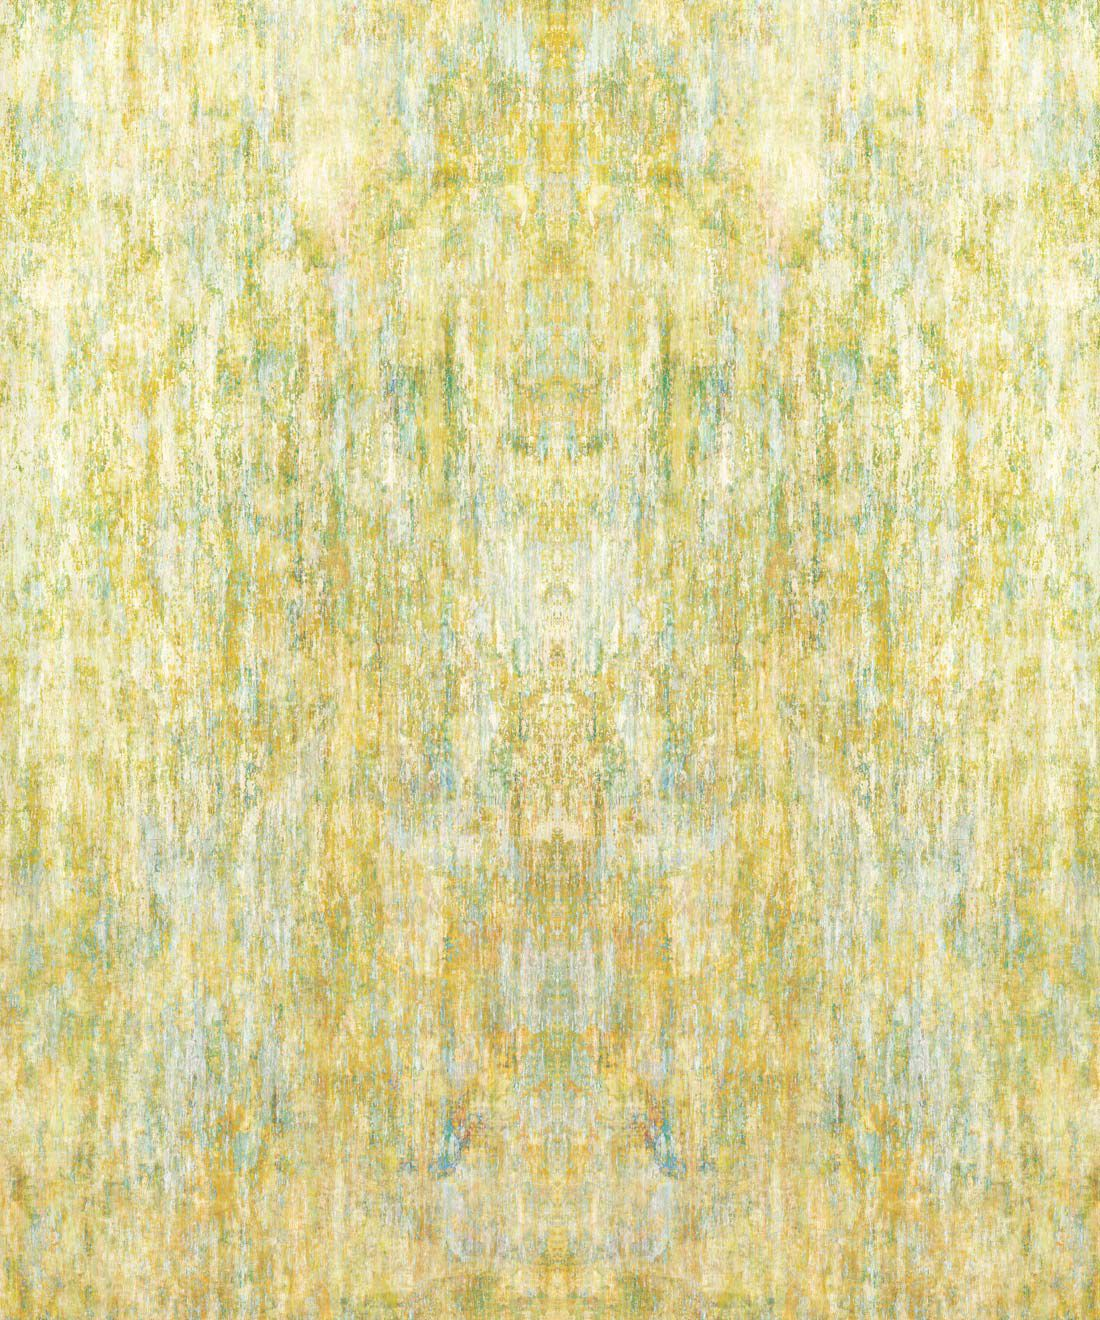 Patina Wallpaper